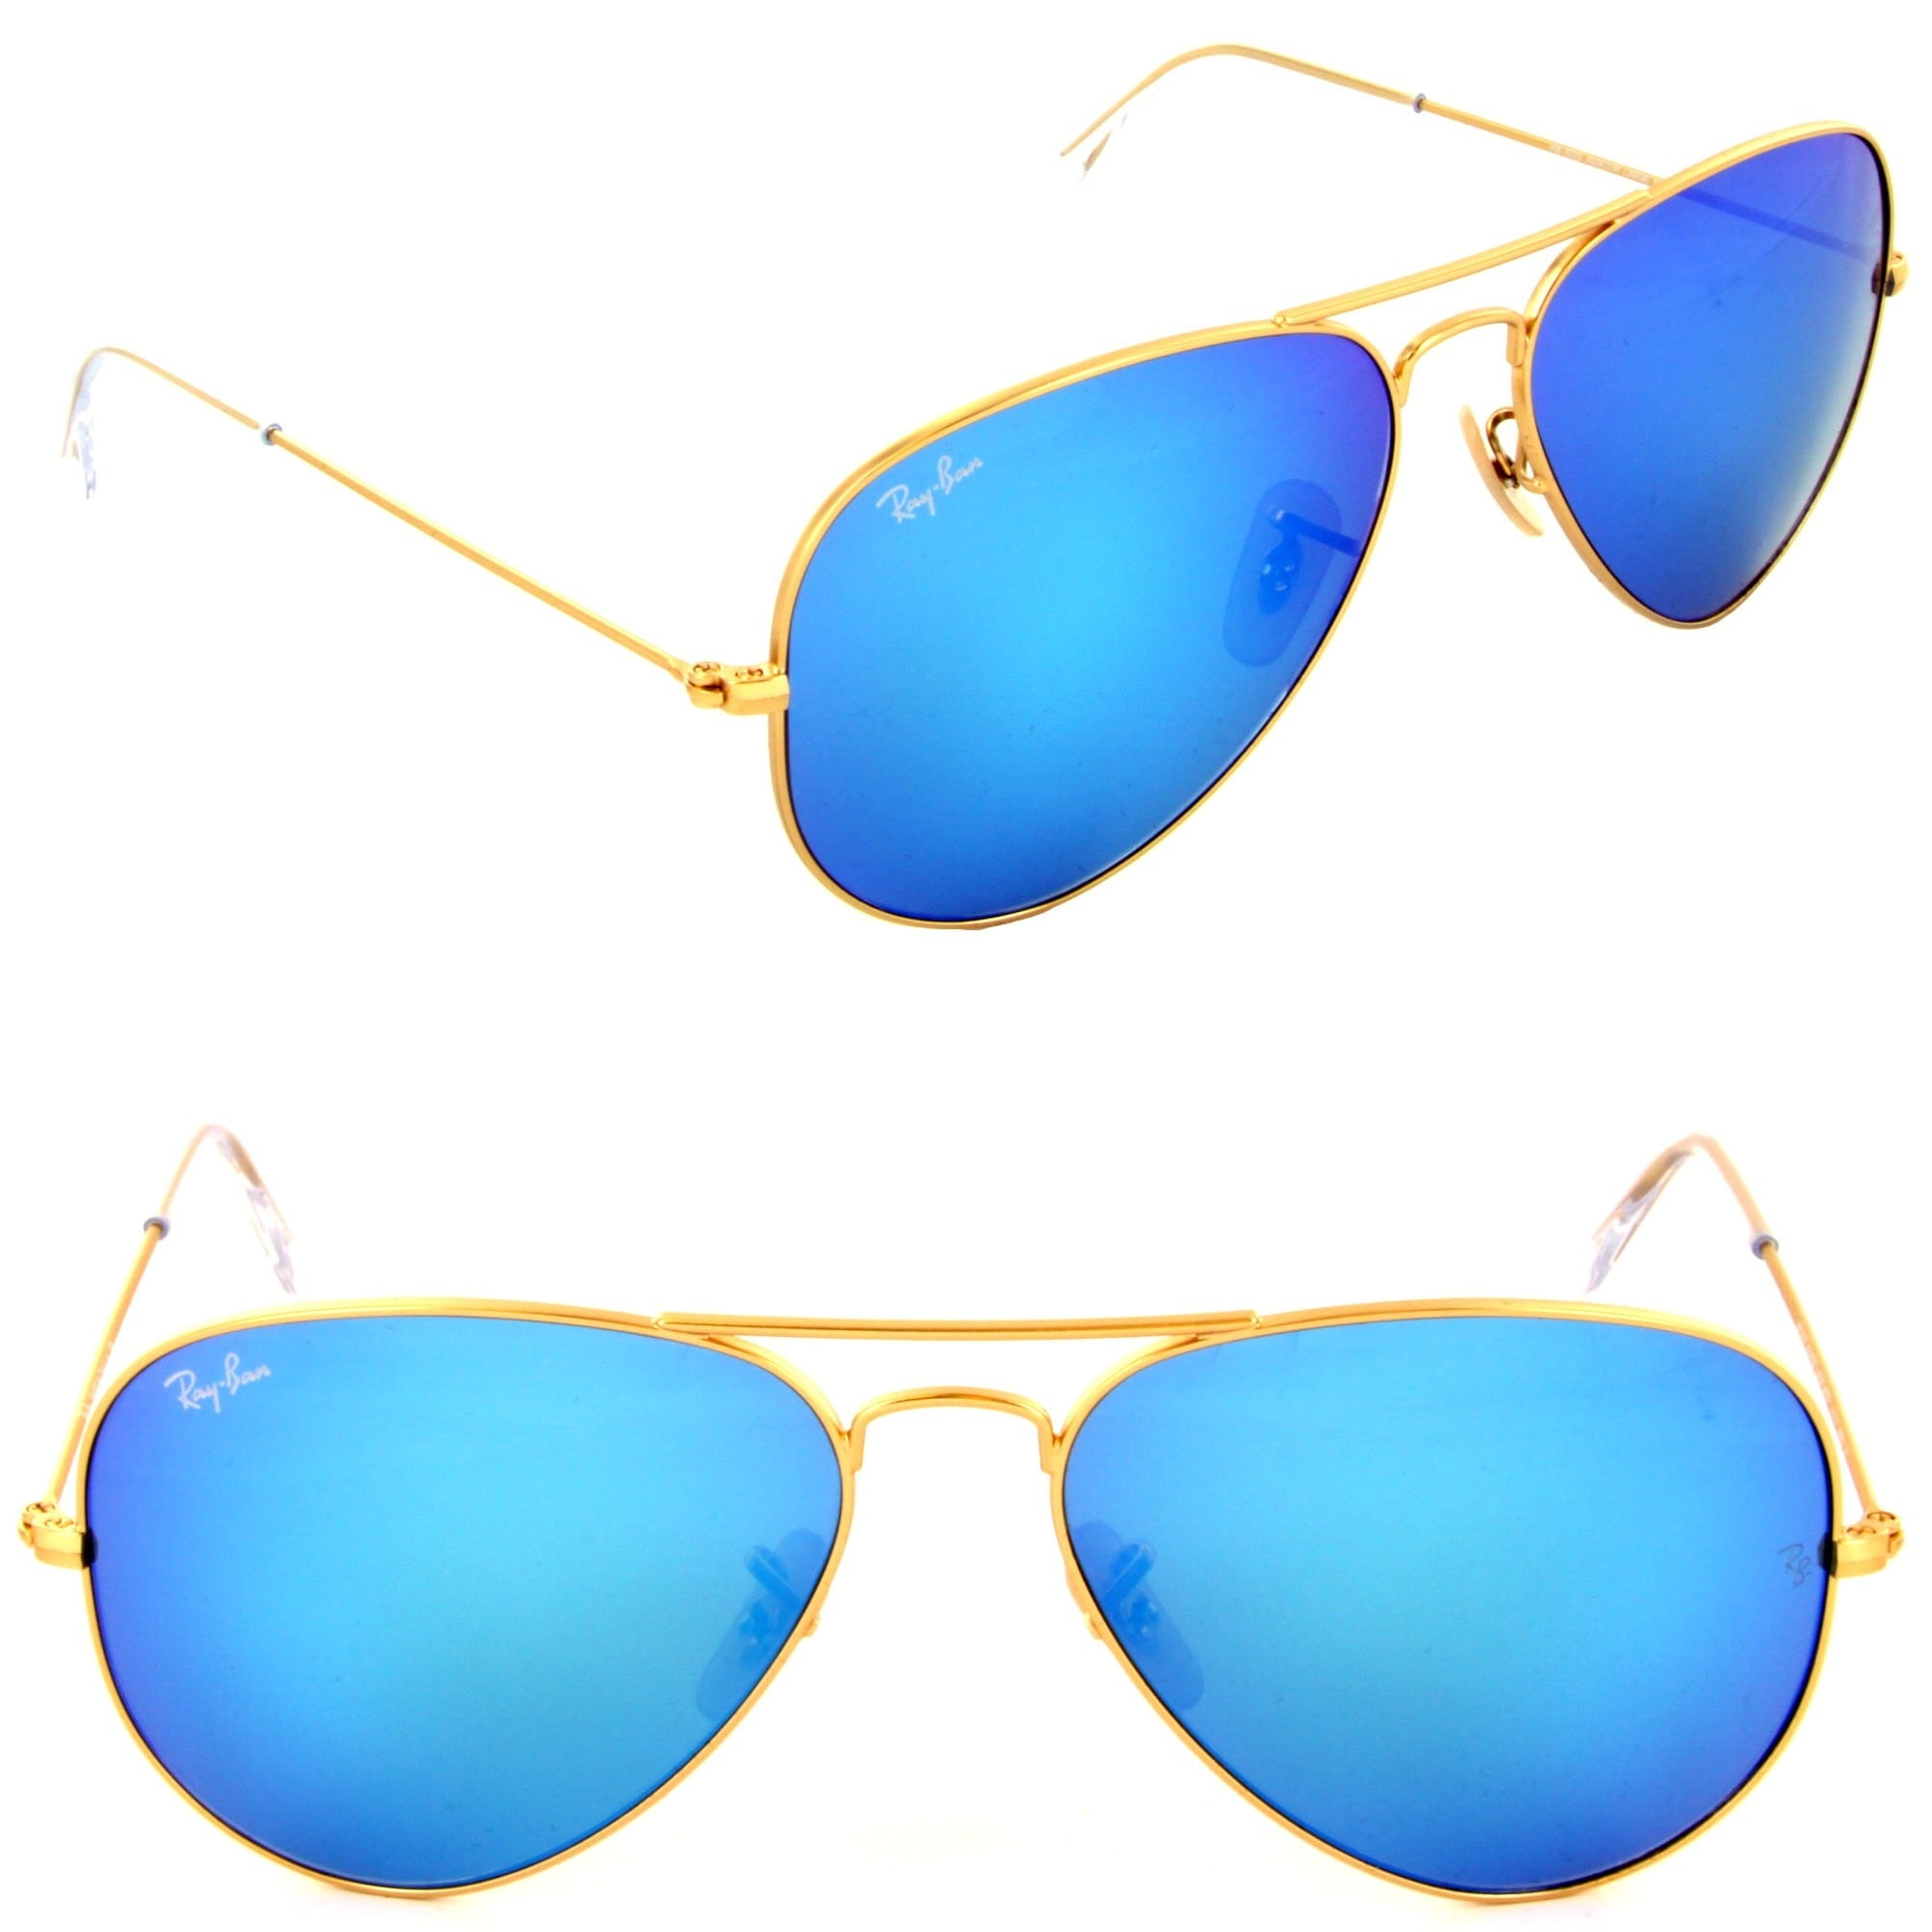 106e5ff846e3d Shop Ray- Ban Aviator RB 3205 Unisex Gold Frame Blue Mirror Lens Sunglasses  - Free Shipping Today - Overstock - 9348681